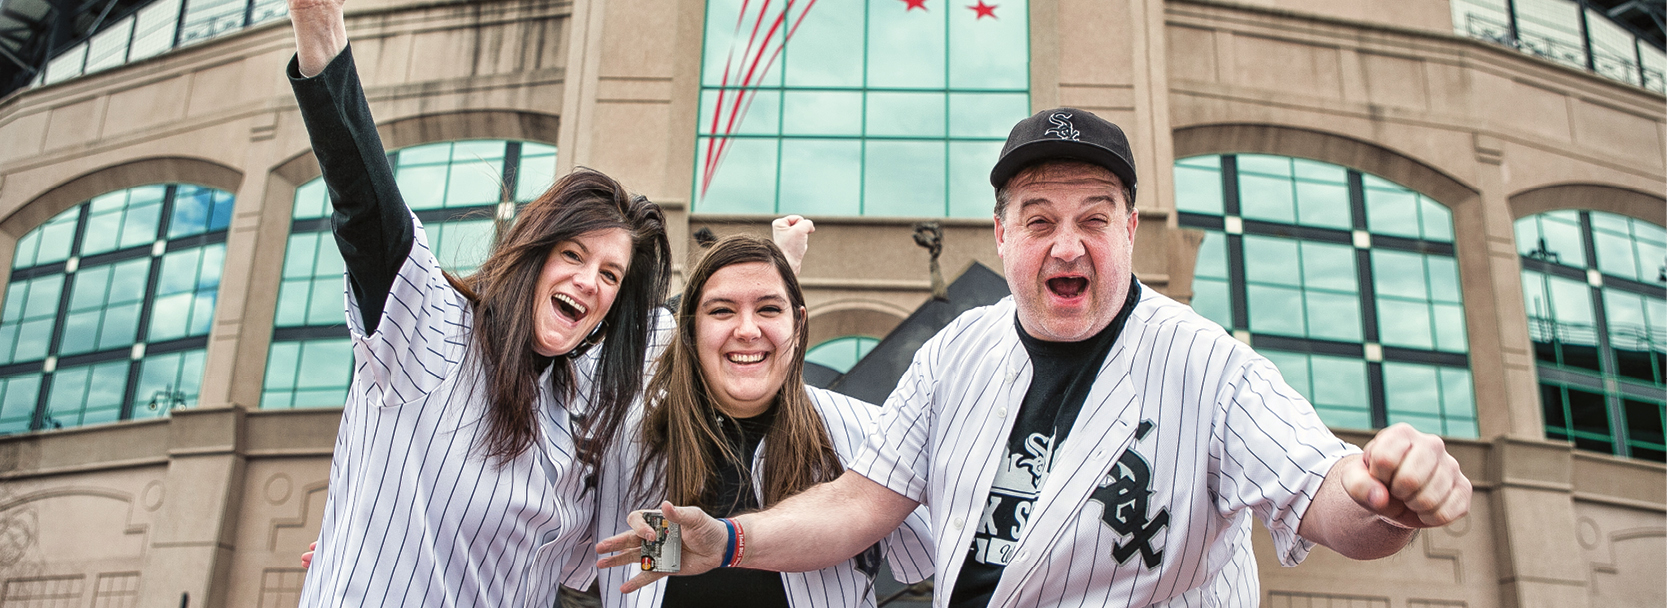 Meet White Sox superfans: The Dynia family